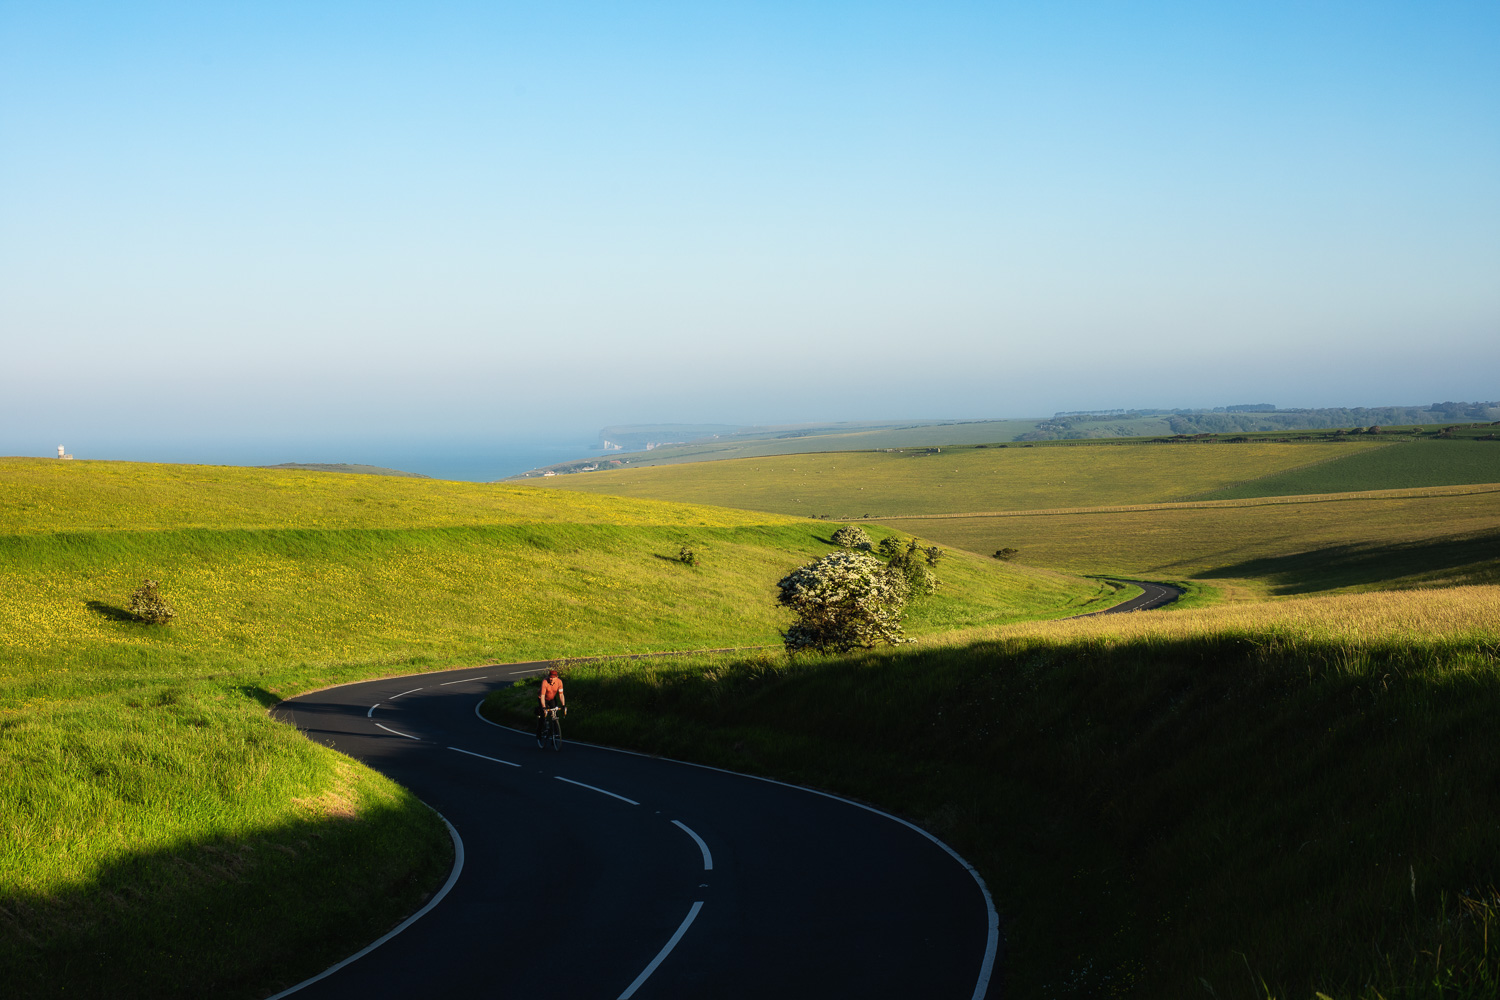 Cyclist on long winding road with distant view of English coastline